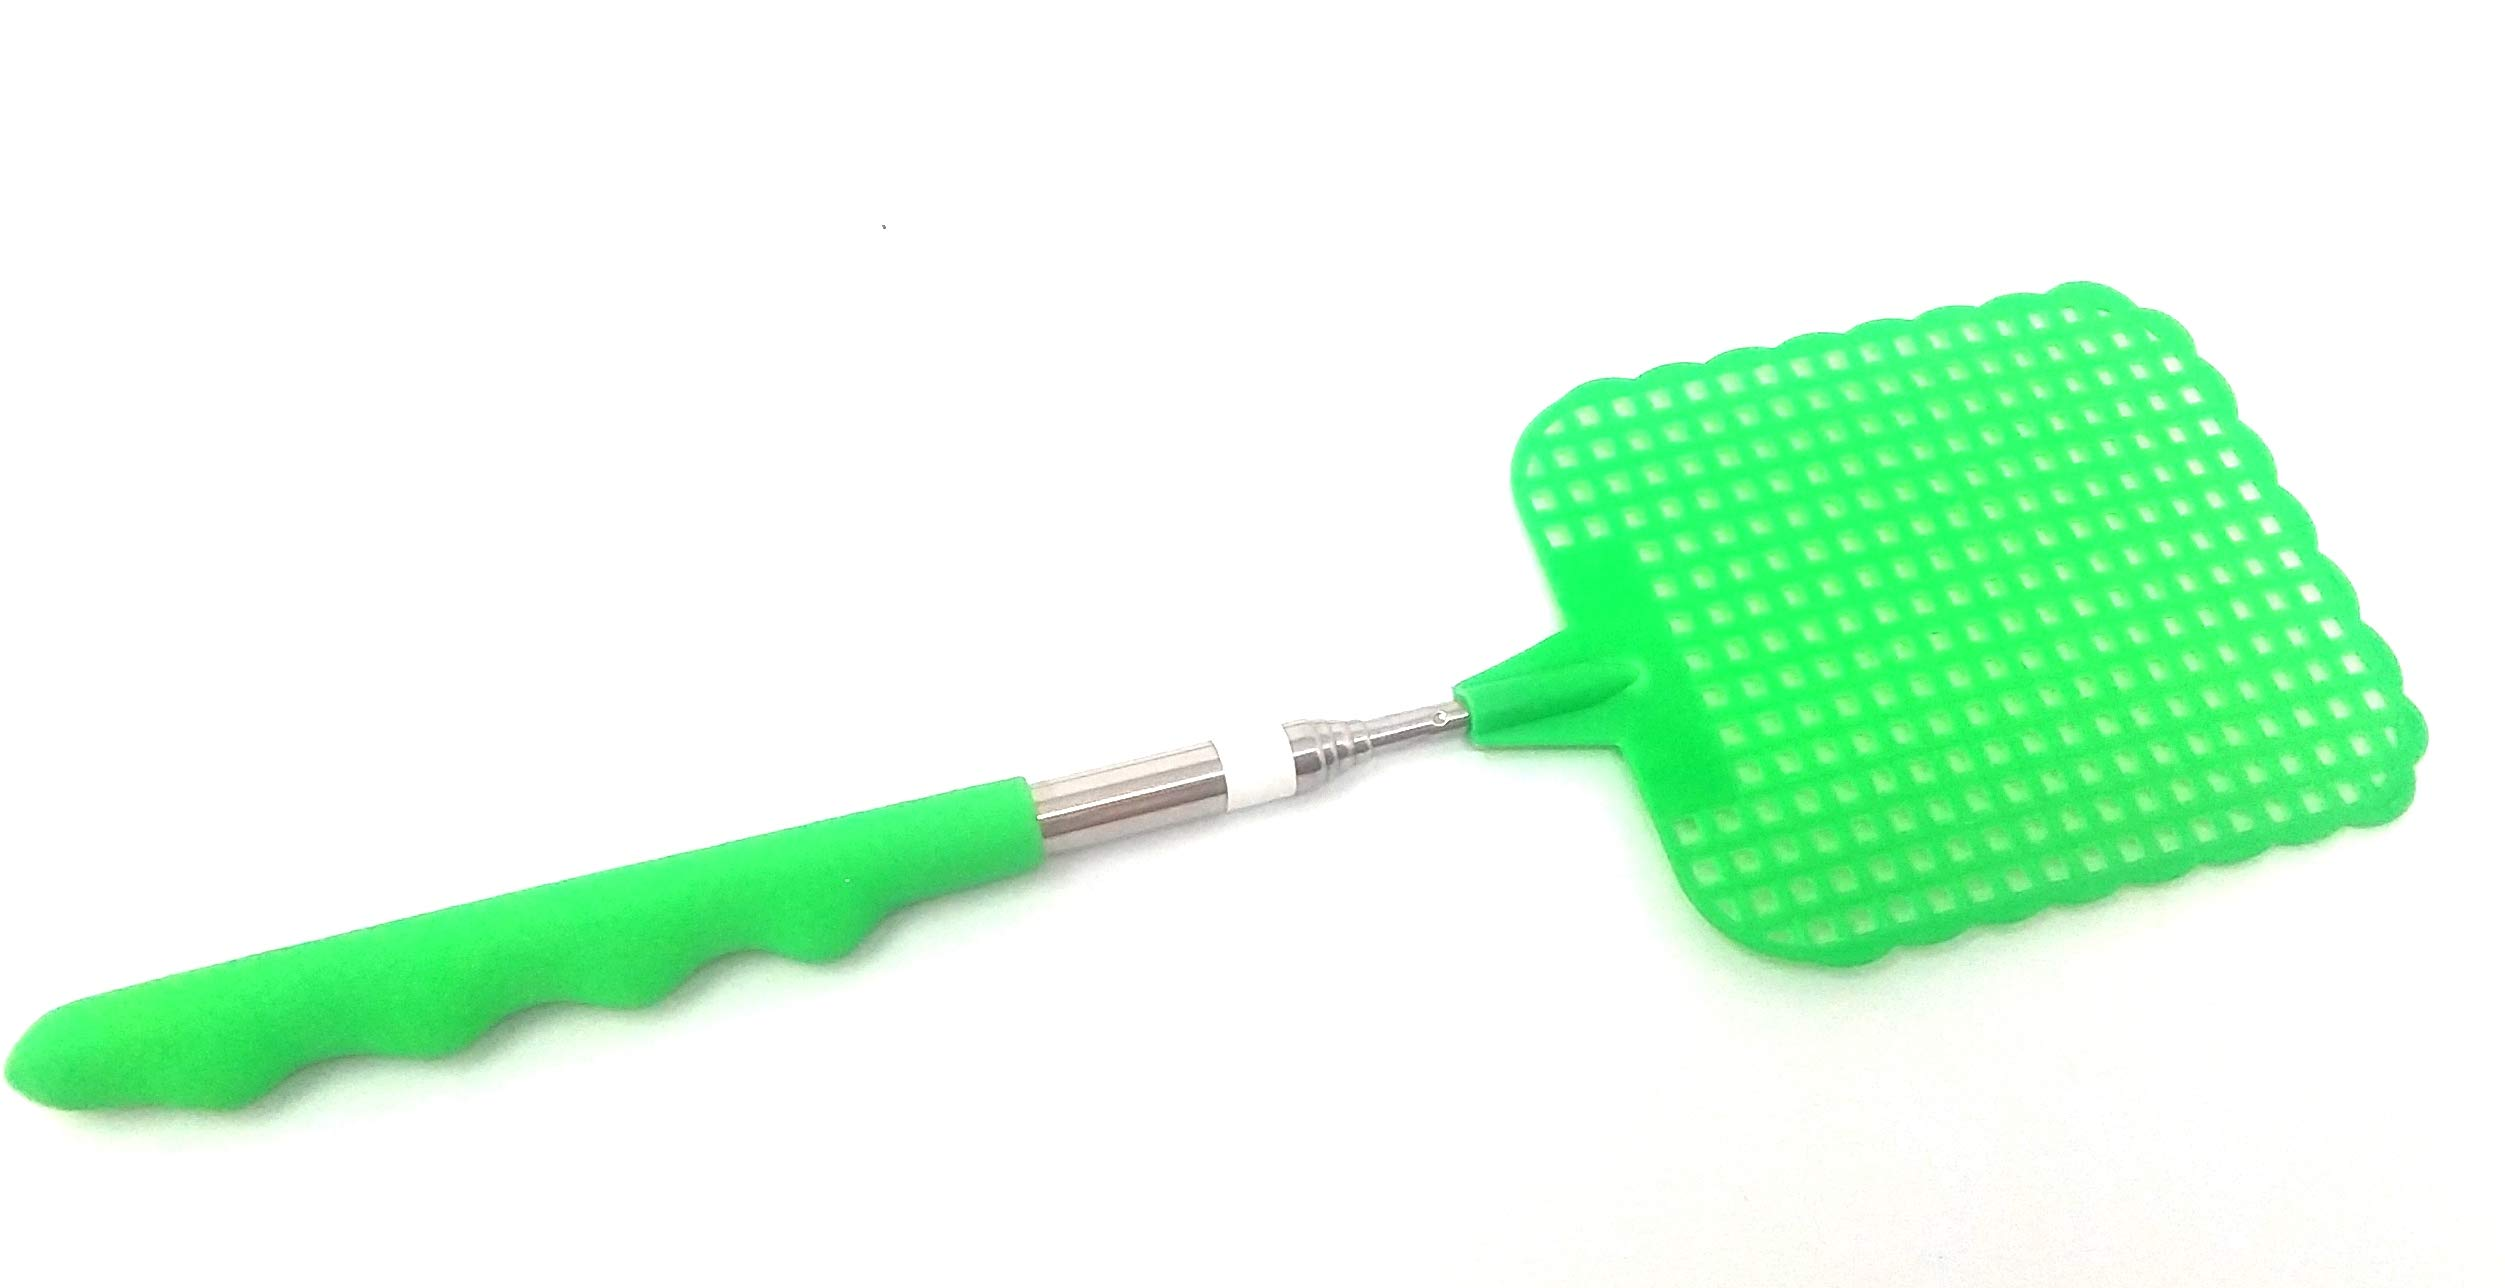 Chachlili 48 Extendable Compact Fly Swatters Telescopic Retractable Fly Swatter Easy to Store, Comfort Grip. Effective Wholesale Bulk LOT